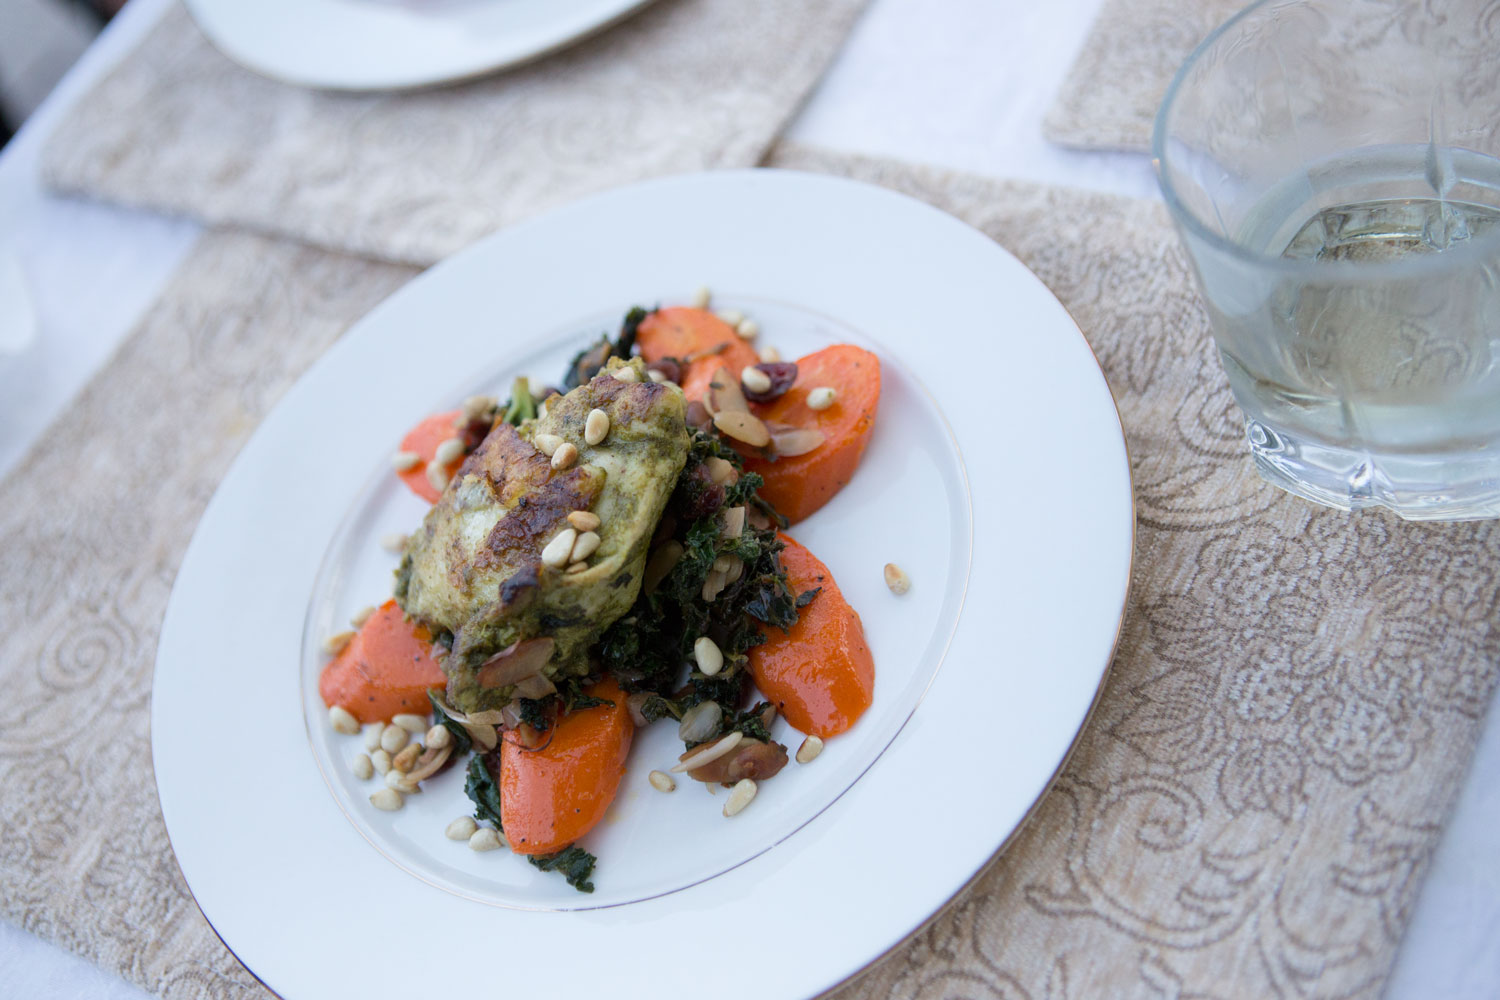 Dinner, roasted veggies with chicken toasted pine nuts